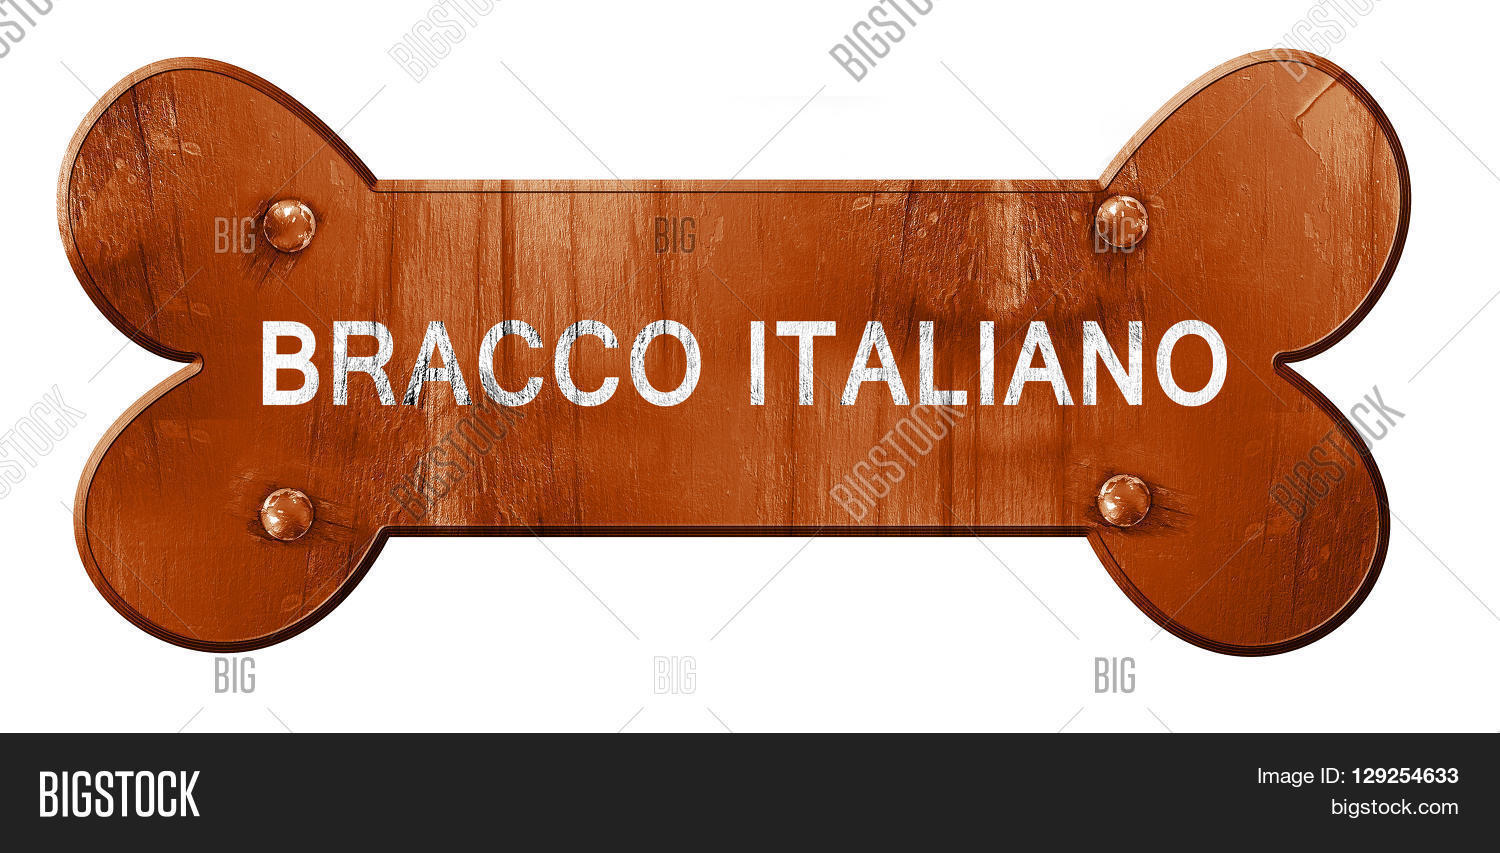 Bracco Italiano clipart #8, Download drawings